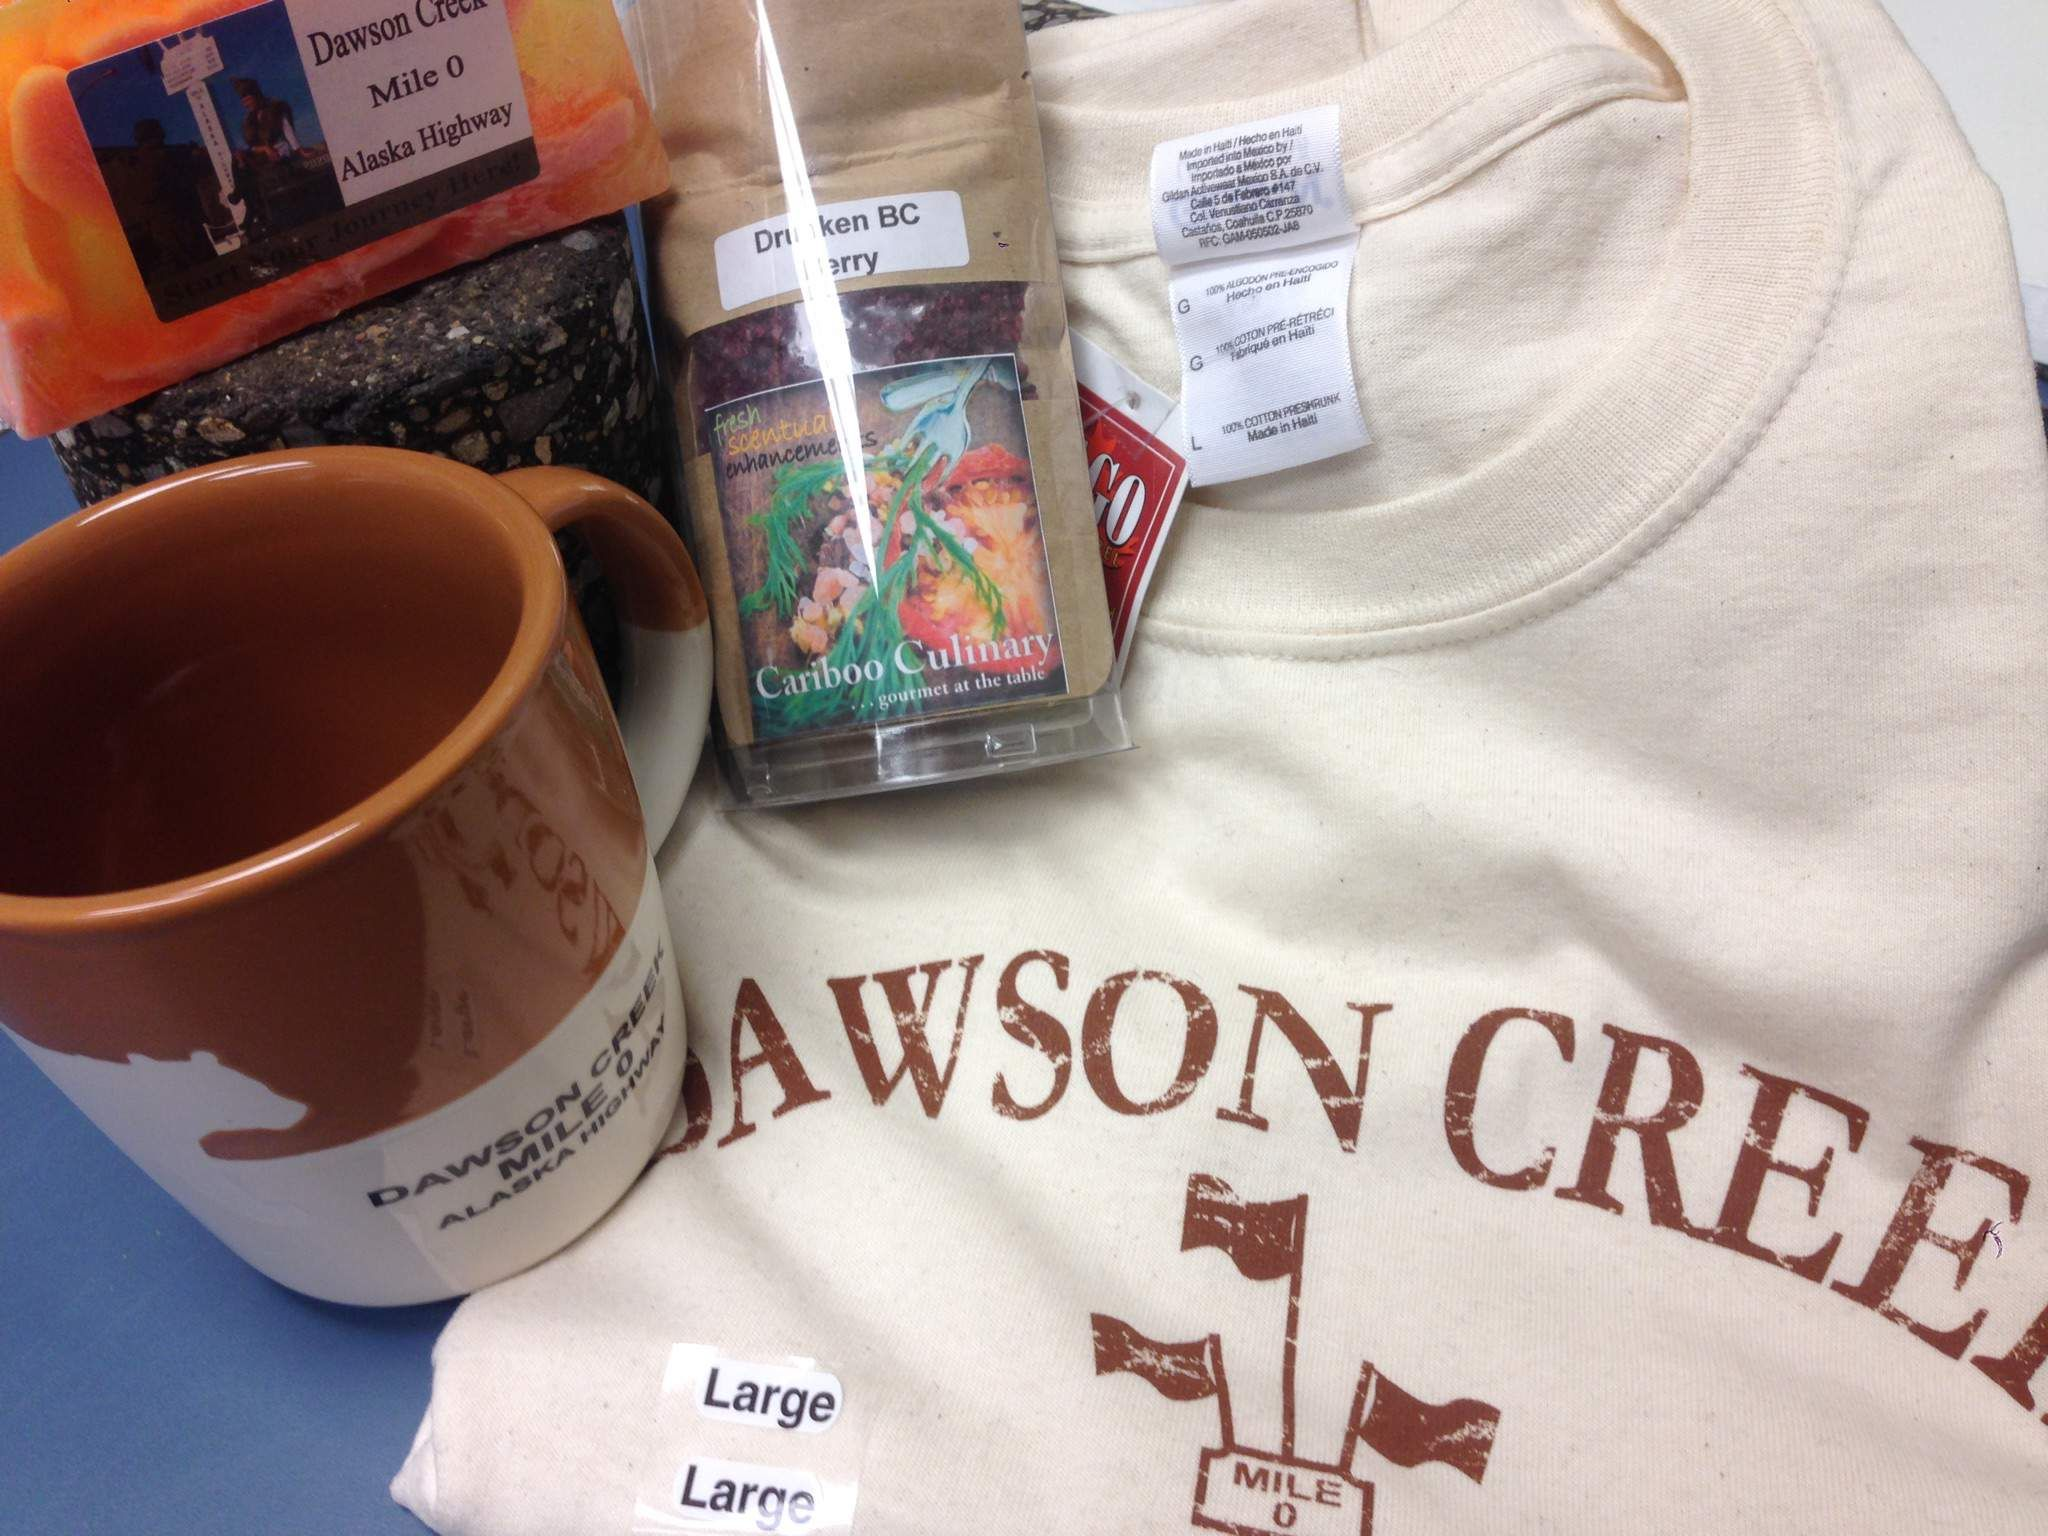 The awesome November Photo Contest prize pack... Check out our Instagram for more info (@tourismcawsoncreek) or our Facebook page Mile 0 Alaska Highway